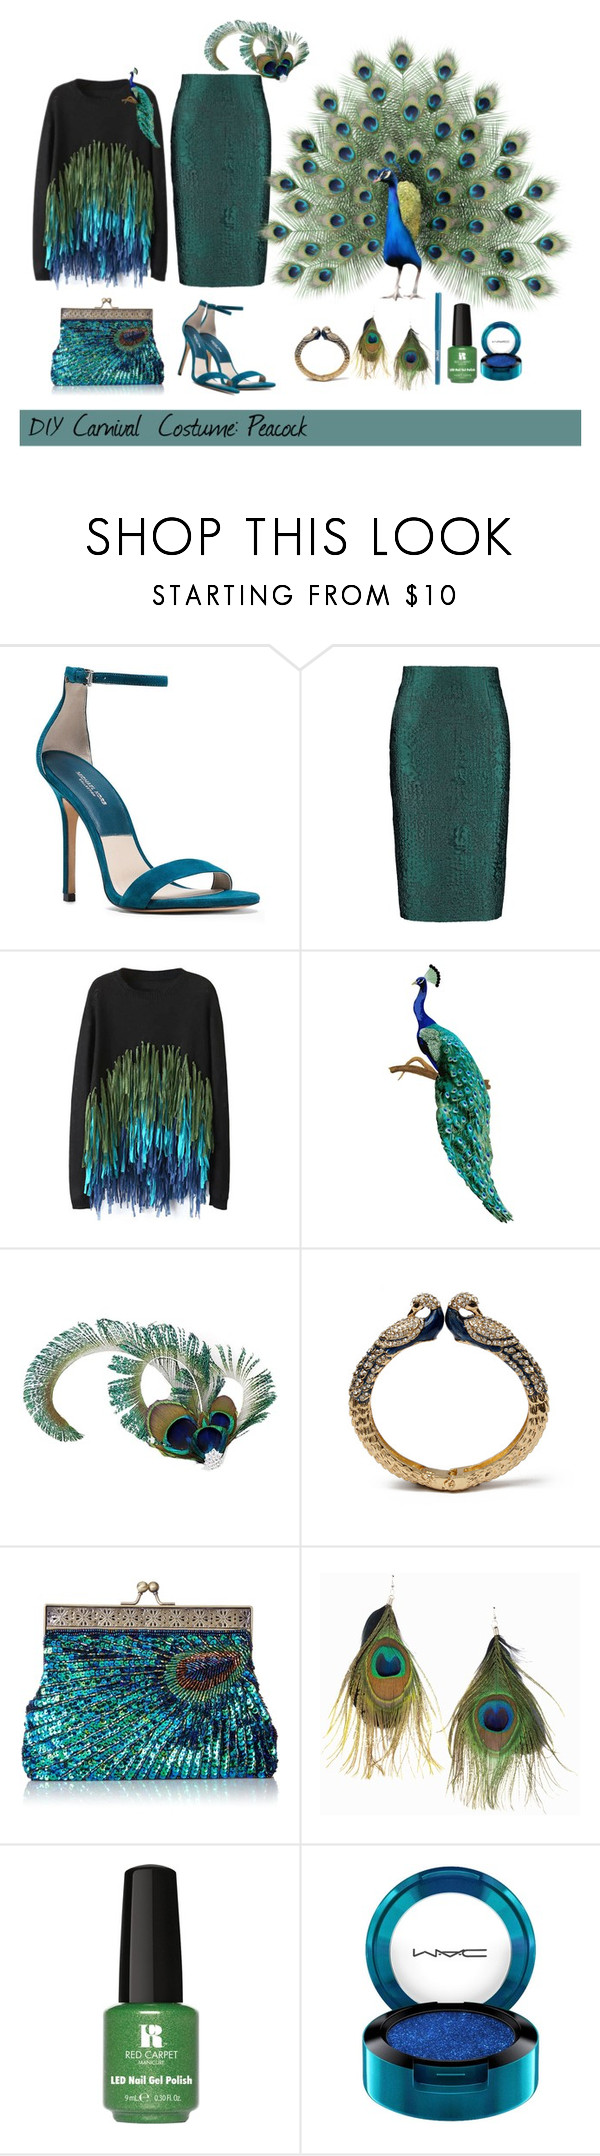 """""""diy carnival costume"""" by polychampion-805 ❤ liked on Polyvore featuring Michael Kors, By Sun, Universal Lighting and Decor, Amrita Singh, Rut&Circle, Red Carpet Manicure, MAC Cosmetics, jane and DIY"""